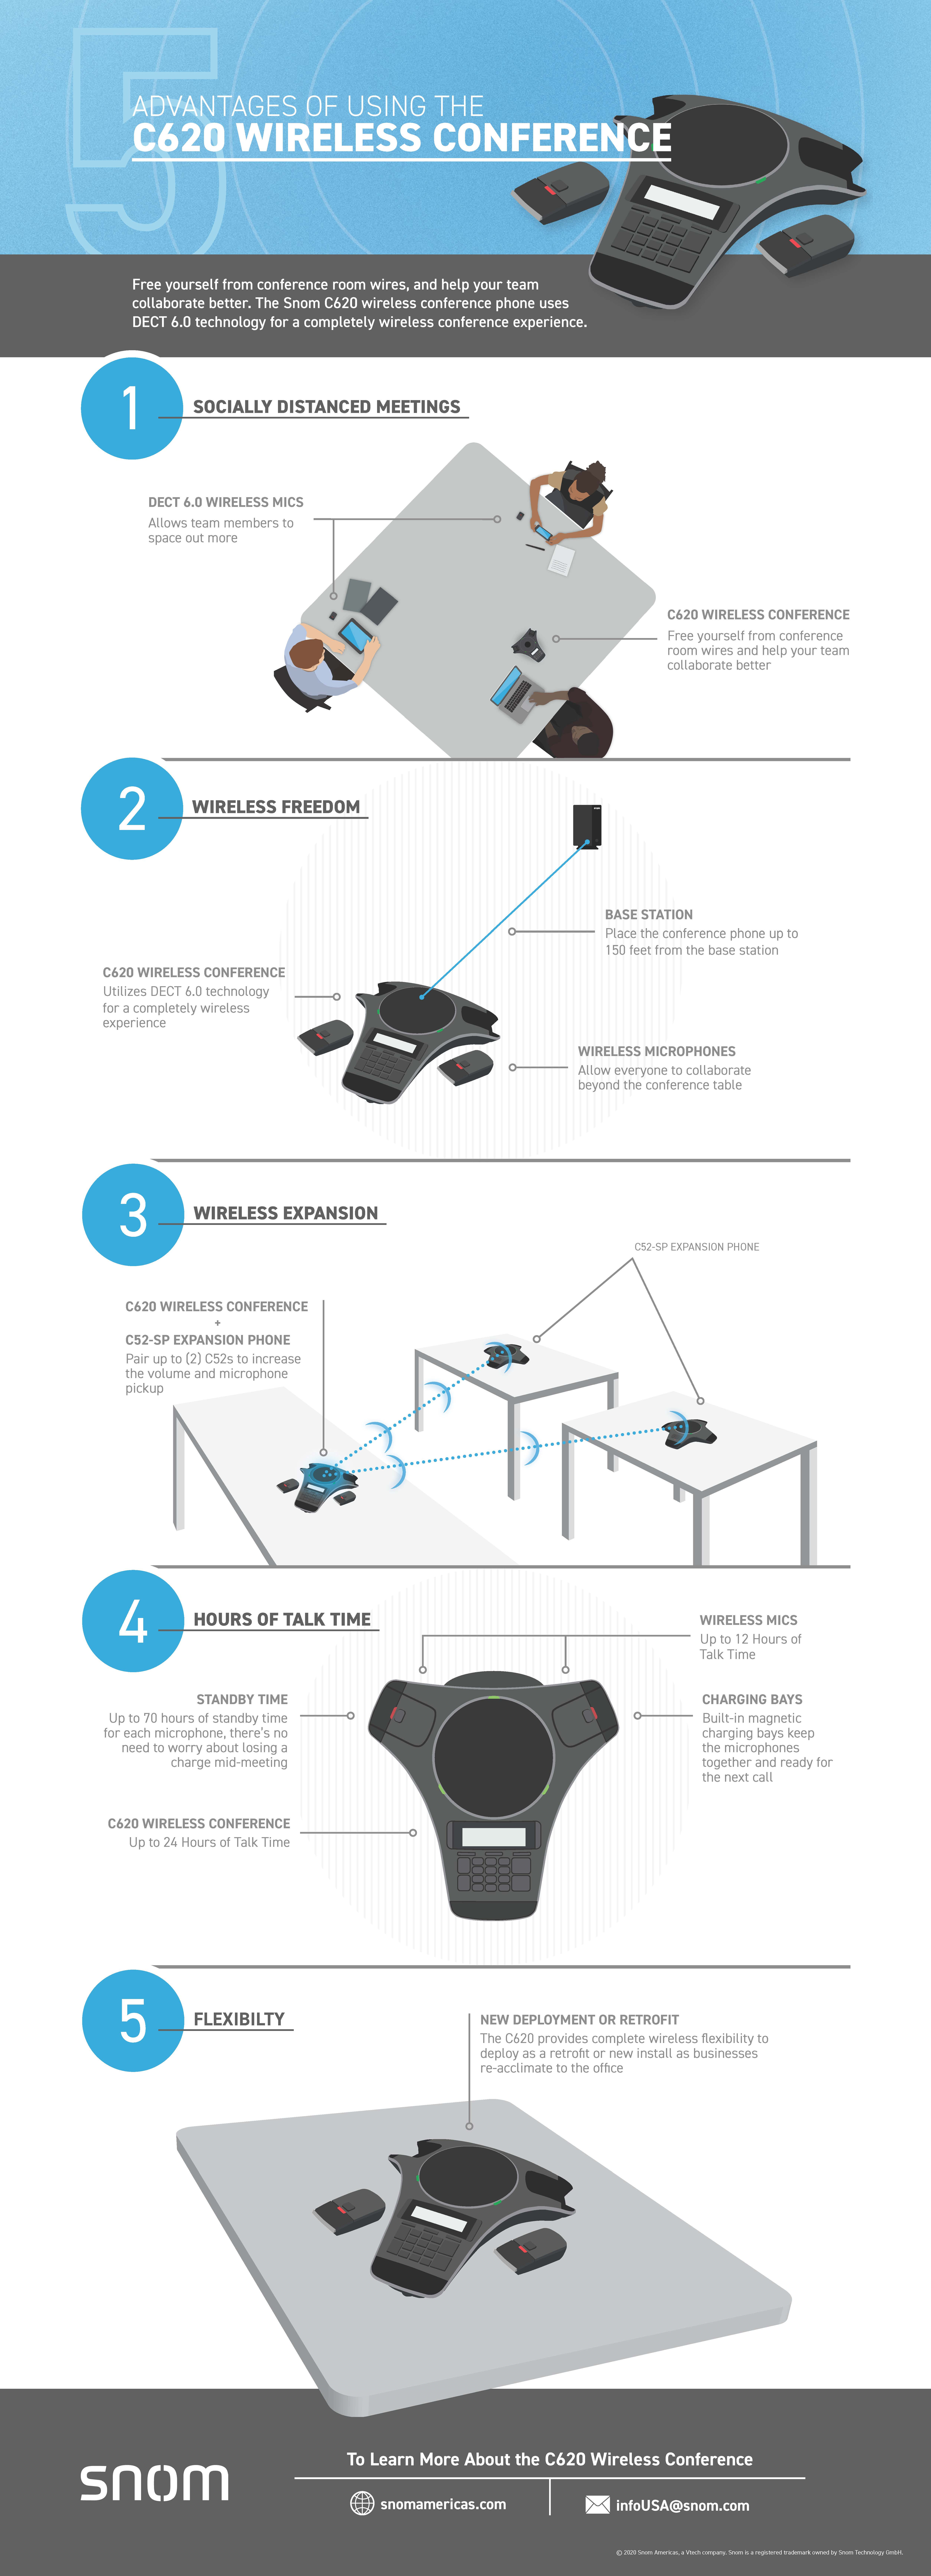 advantages-of-using-c620-infographic